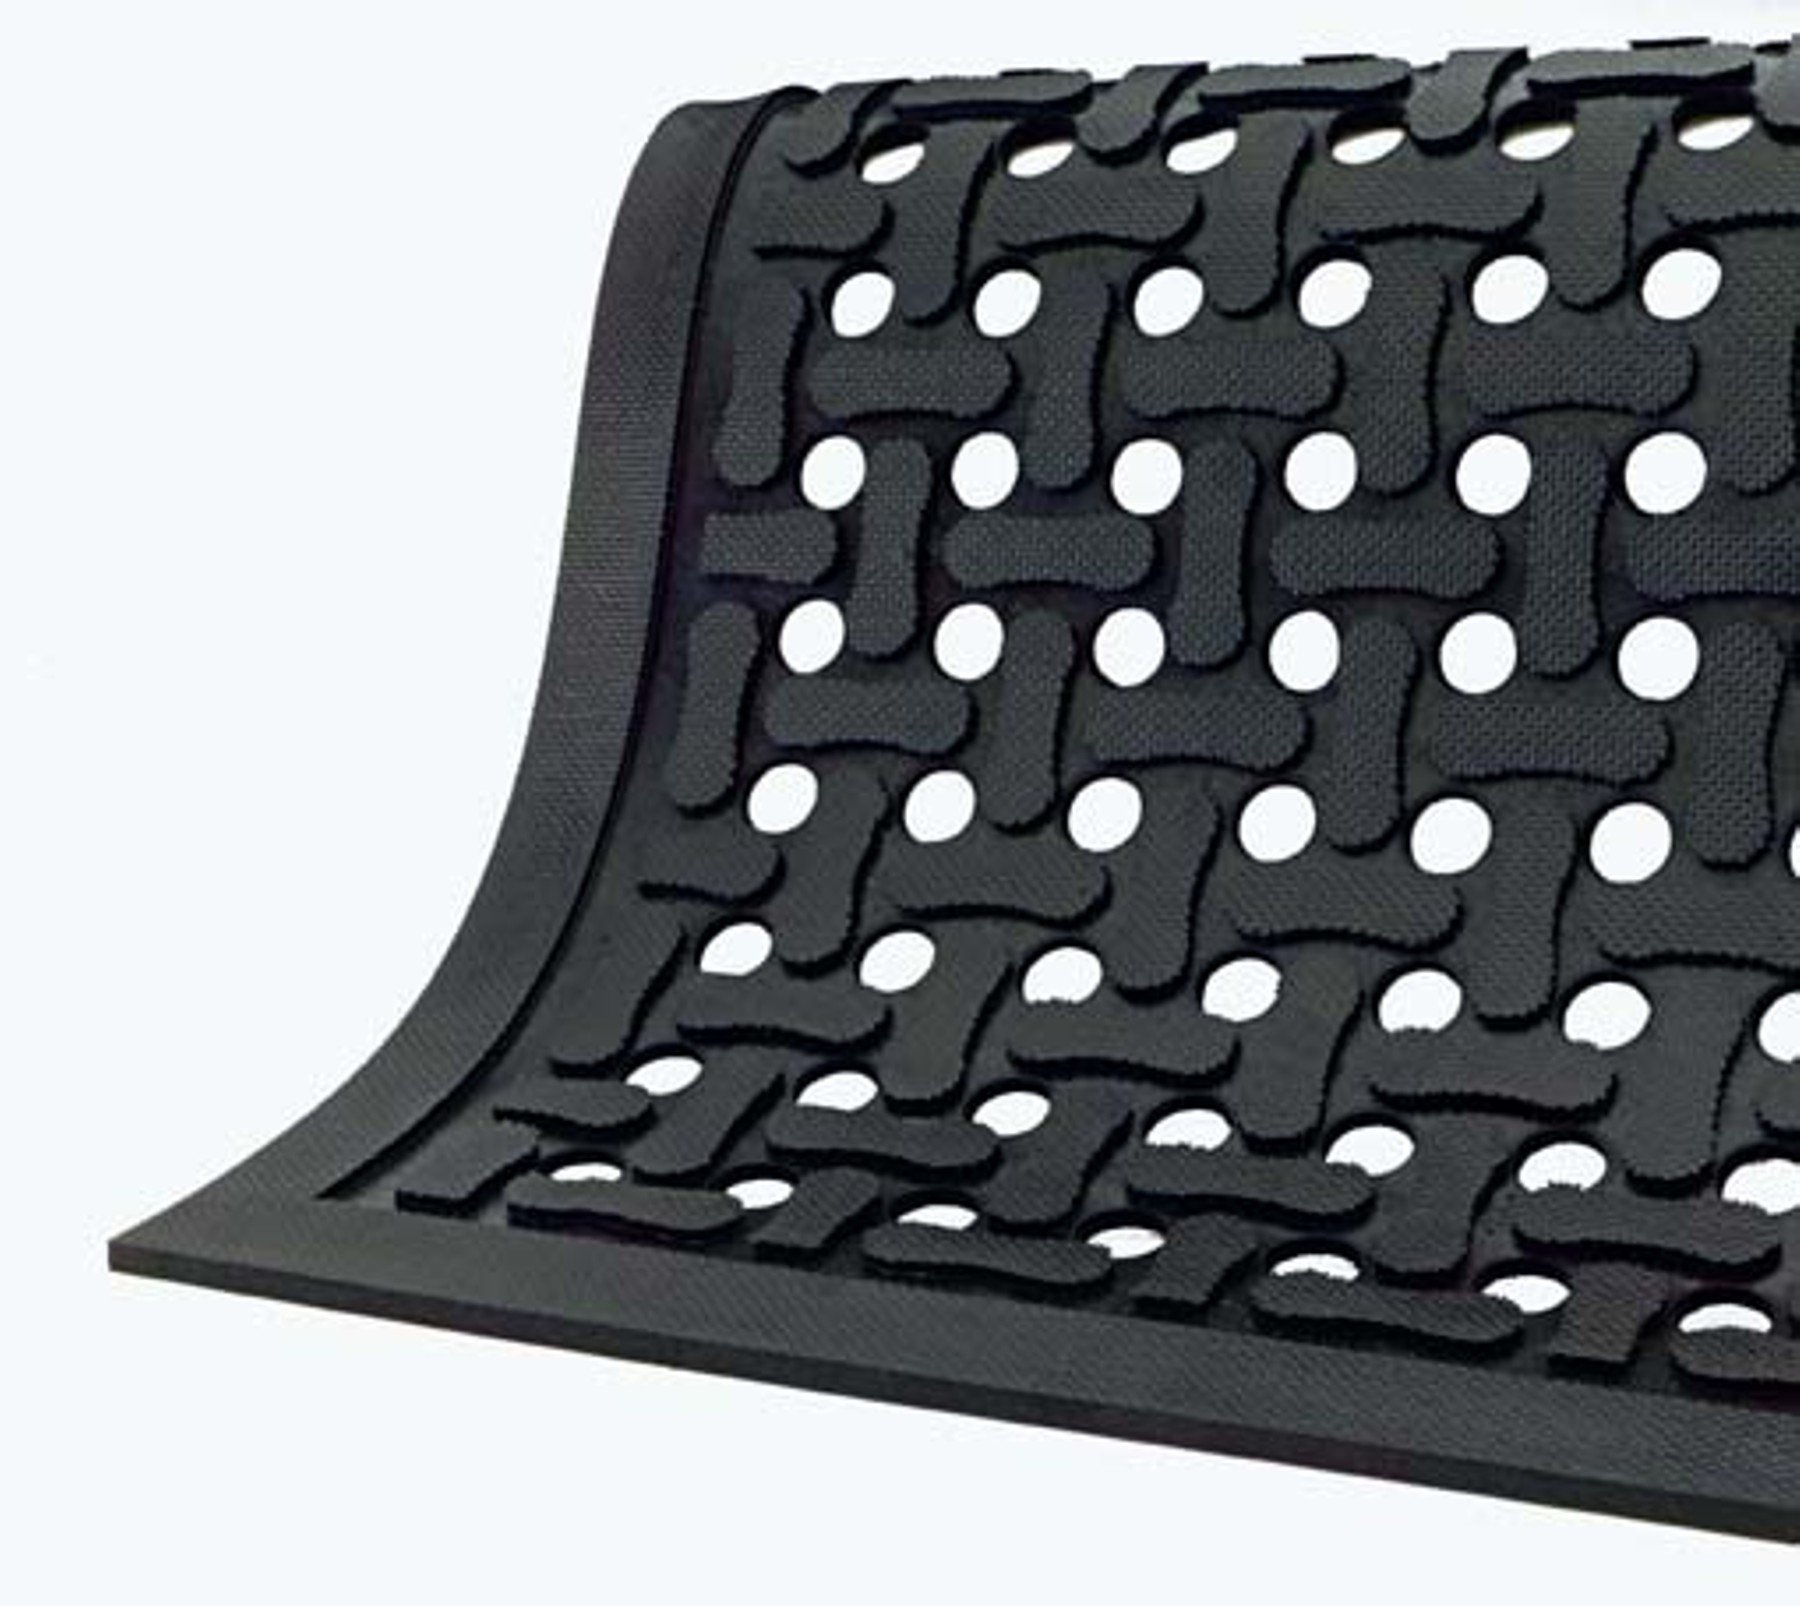 Comfort Flow Black Rubber Commercial Kitchen Drainage Mat, Anti-Fatigue, Slip and Grease/Oil Resistant 5' Length x 3' Width, by M+A Matting by M+A Matting